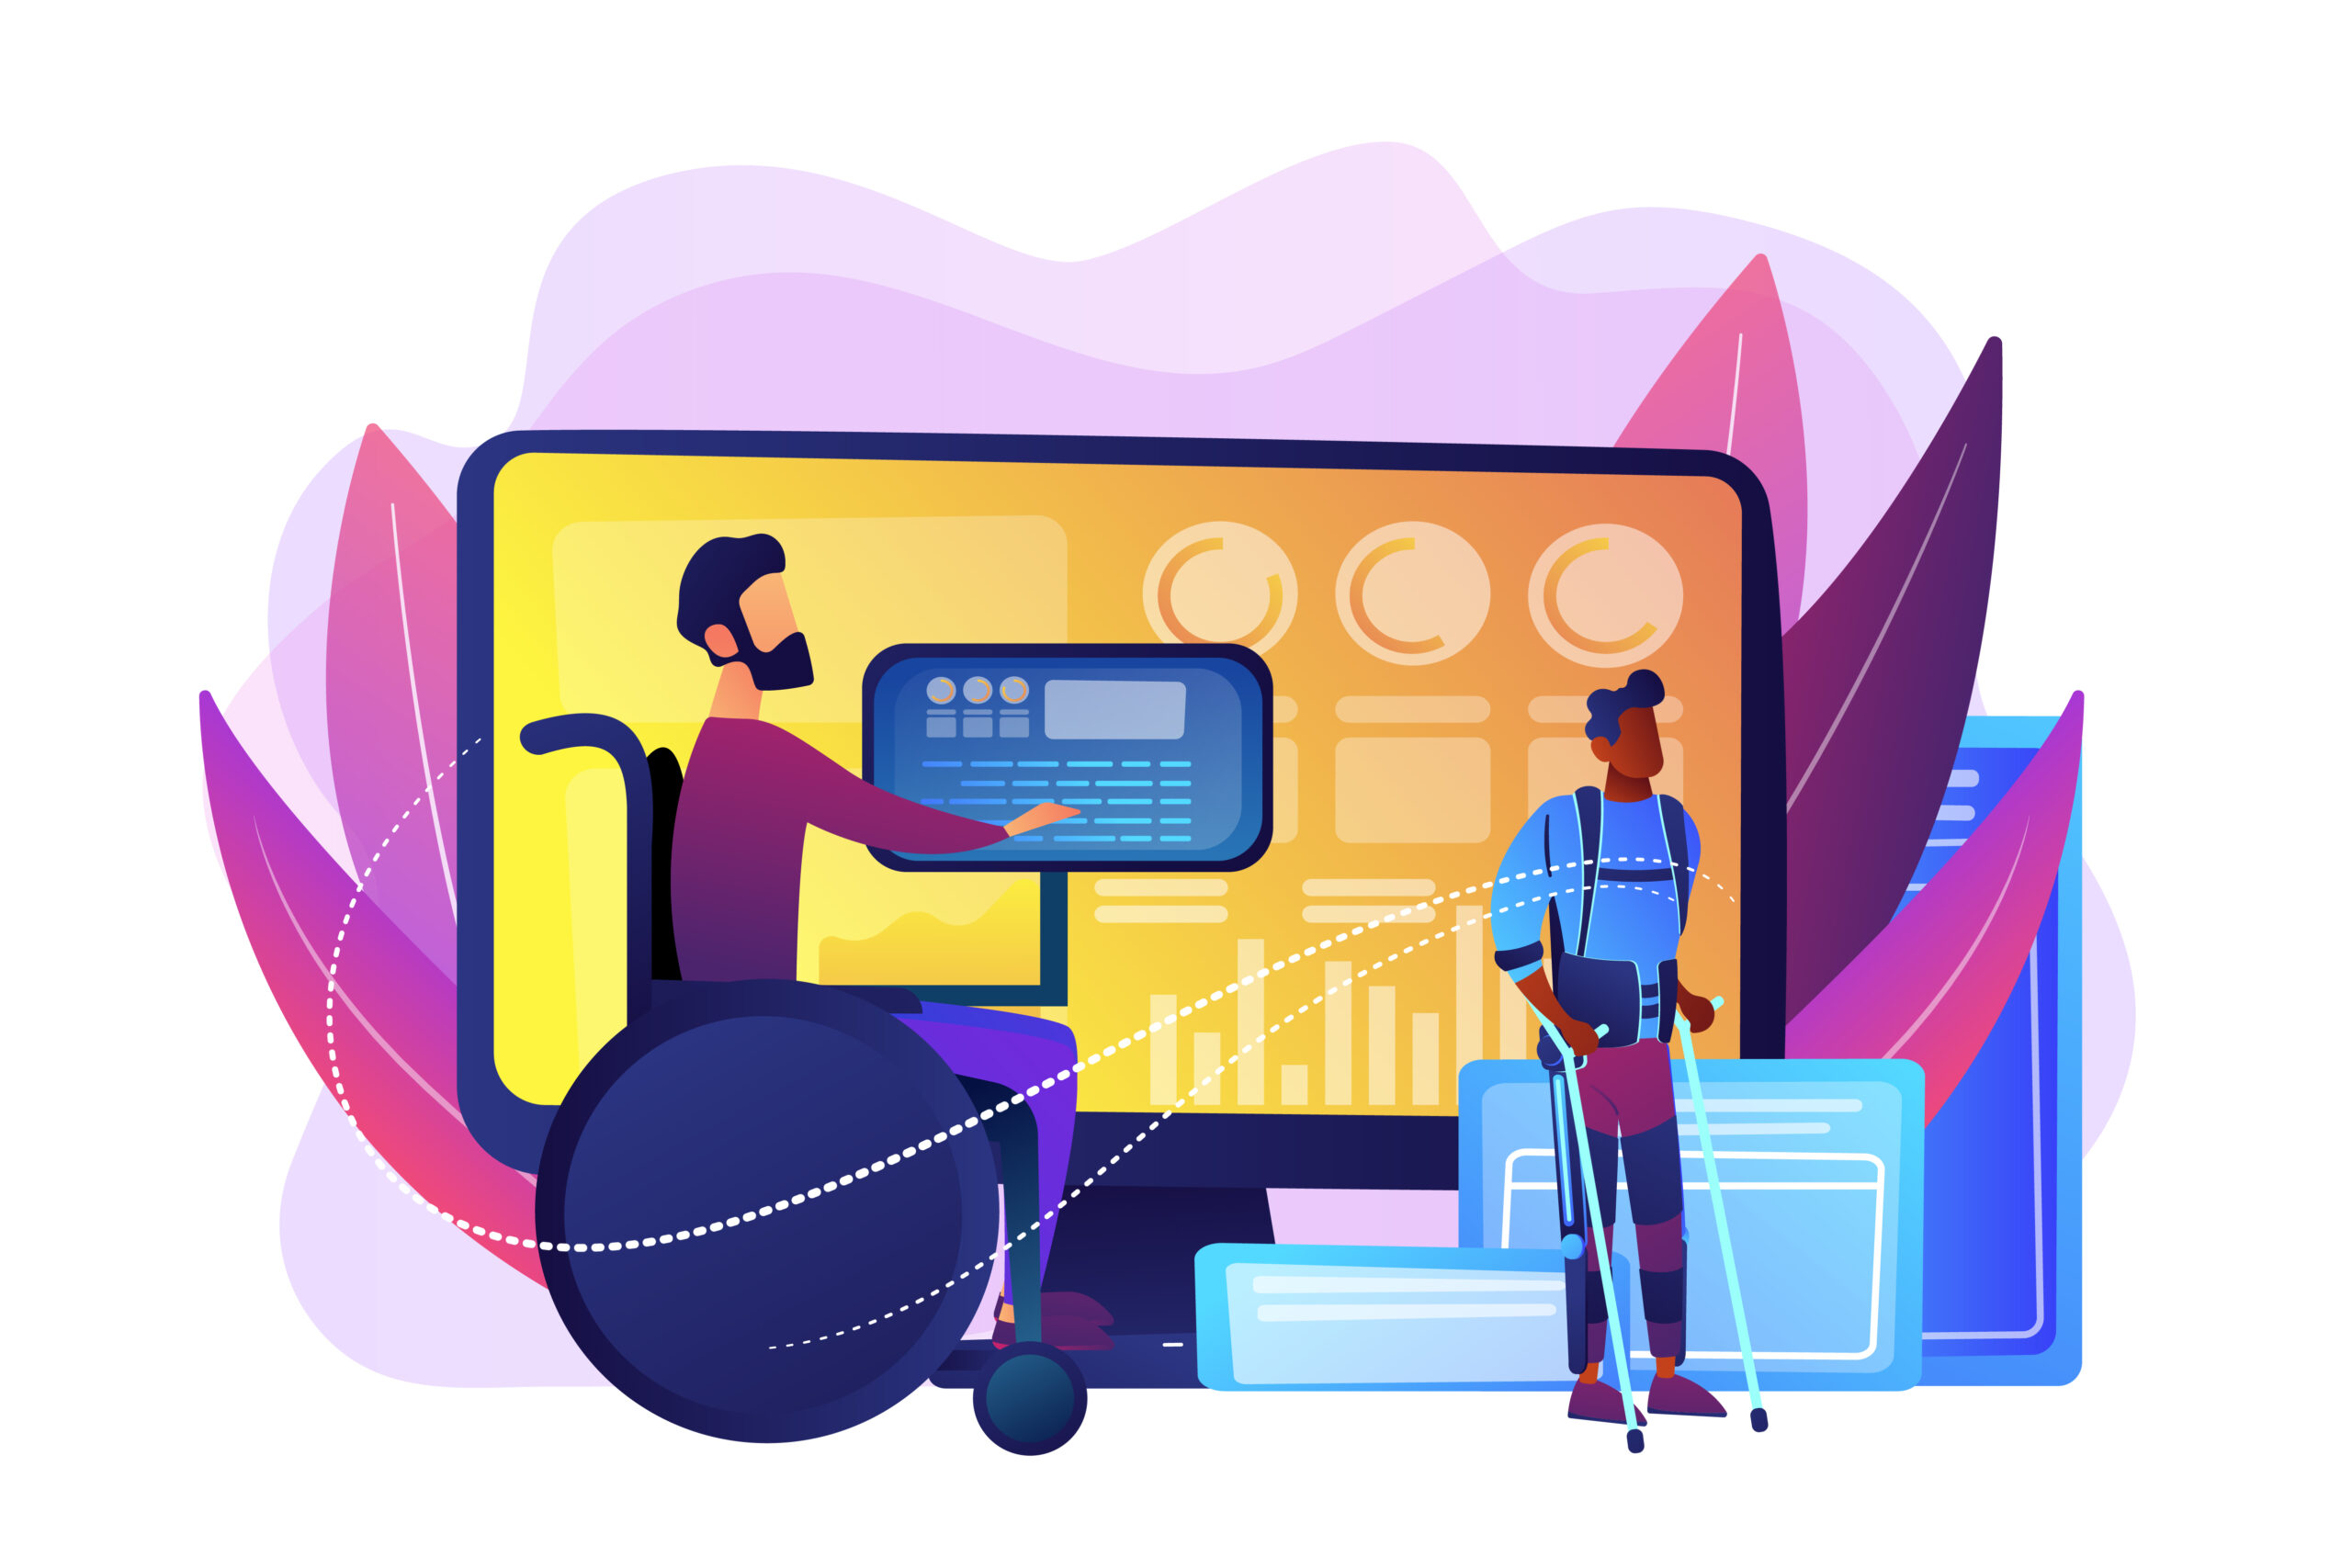 A vector illustration composite of a man in a wheelchair using touch assistive technology, a man standing with the use of 2 walking sticks, and overlapping images of screens